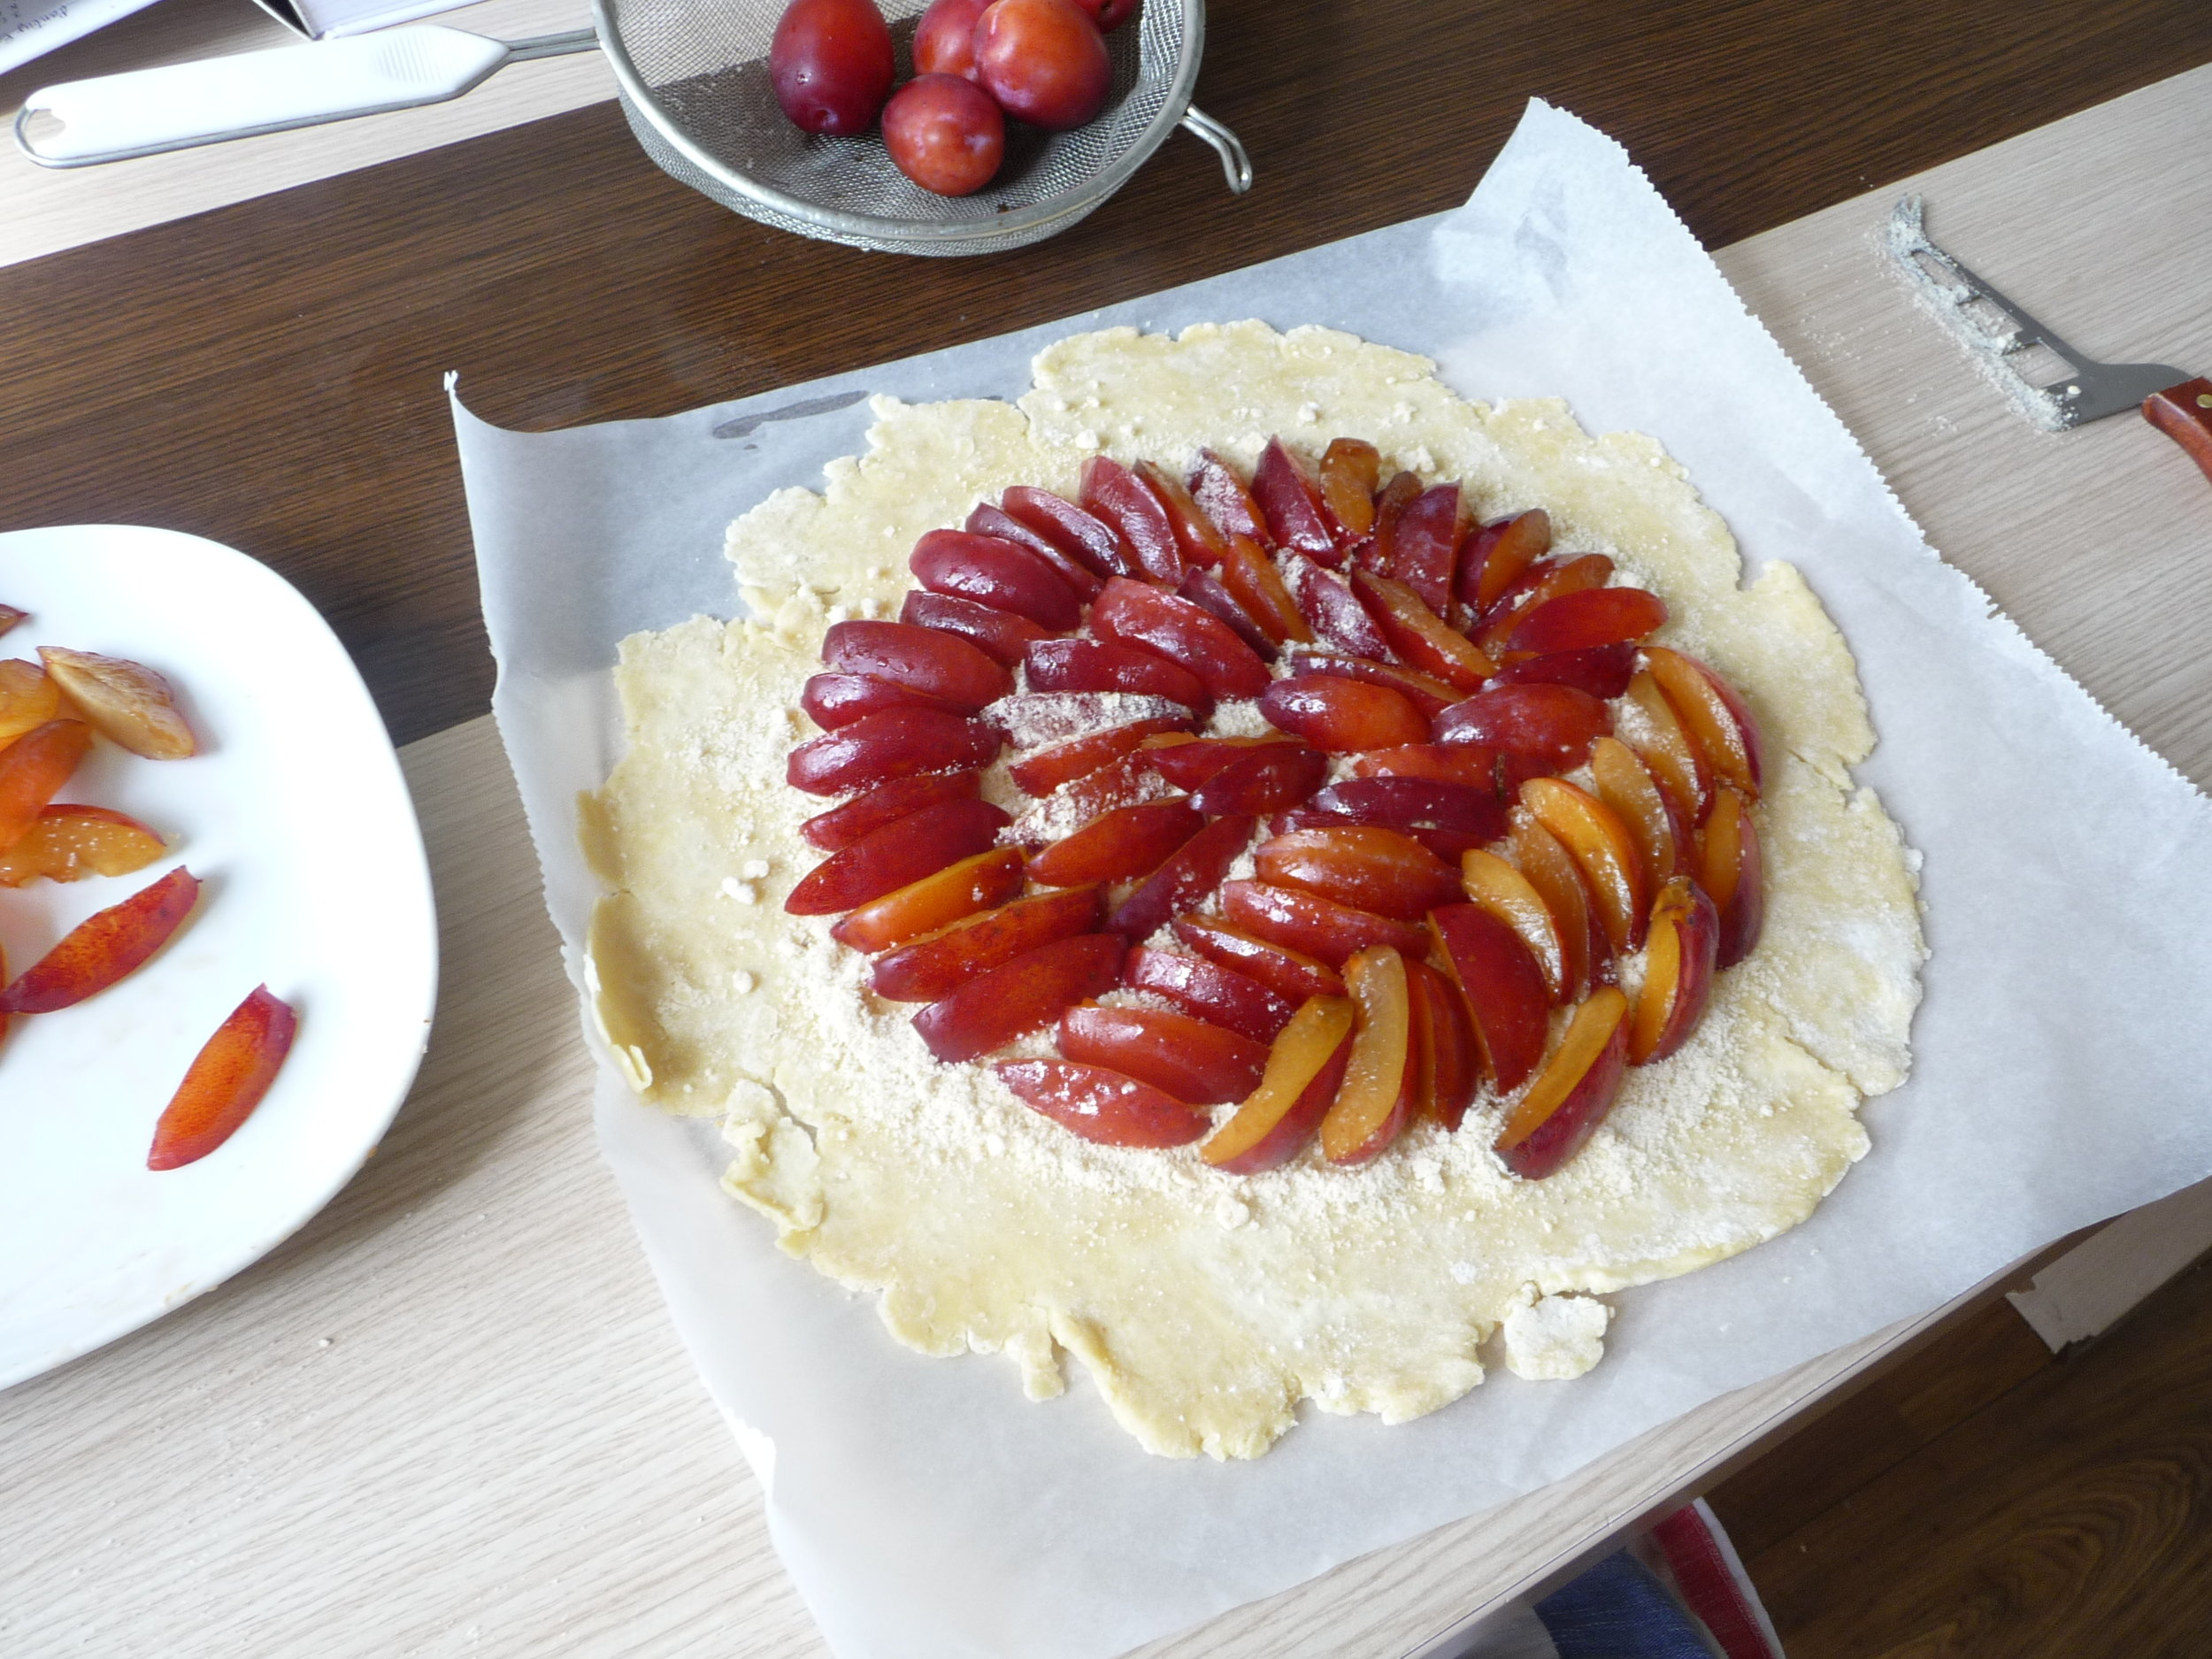 Preparing a plum tart